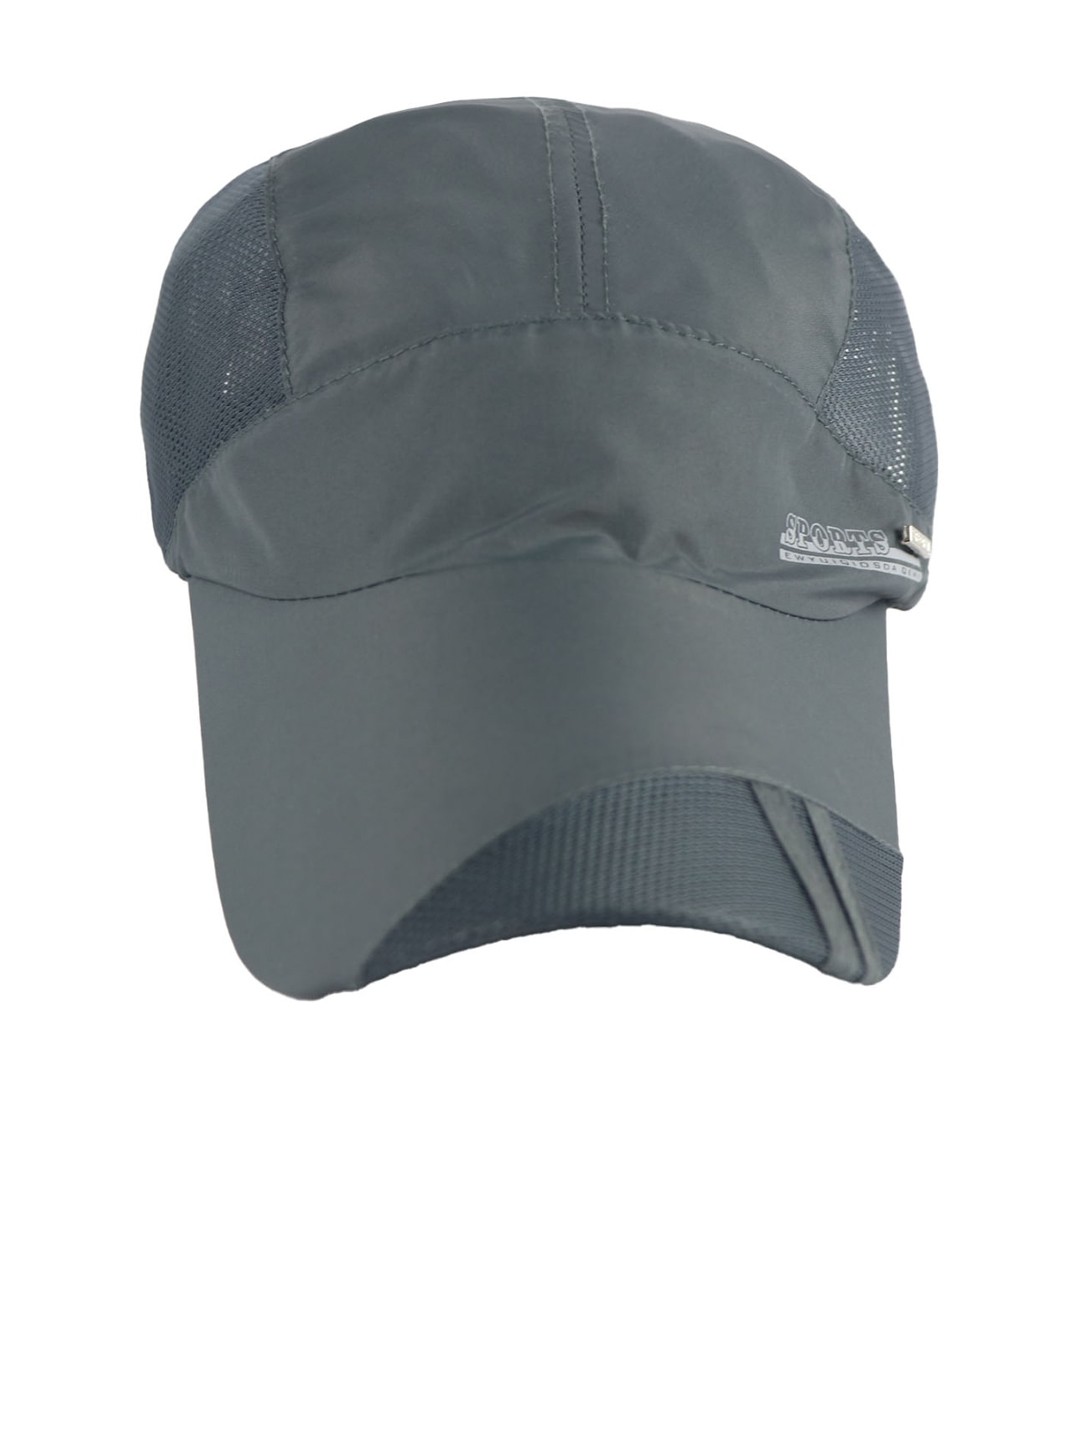 iSWEVEN Unisex Grey Solid Snapback Cap